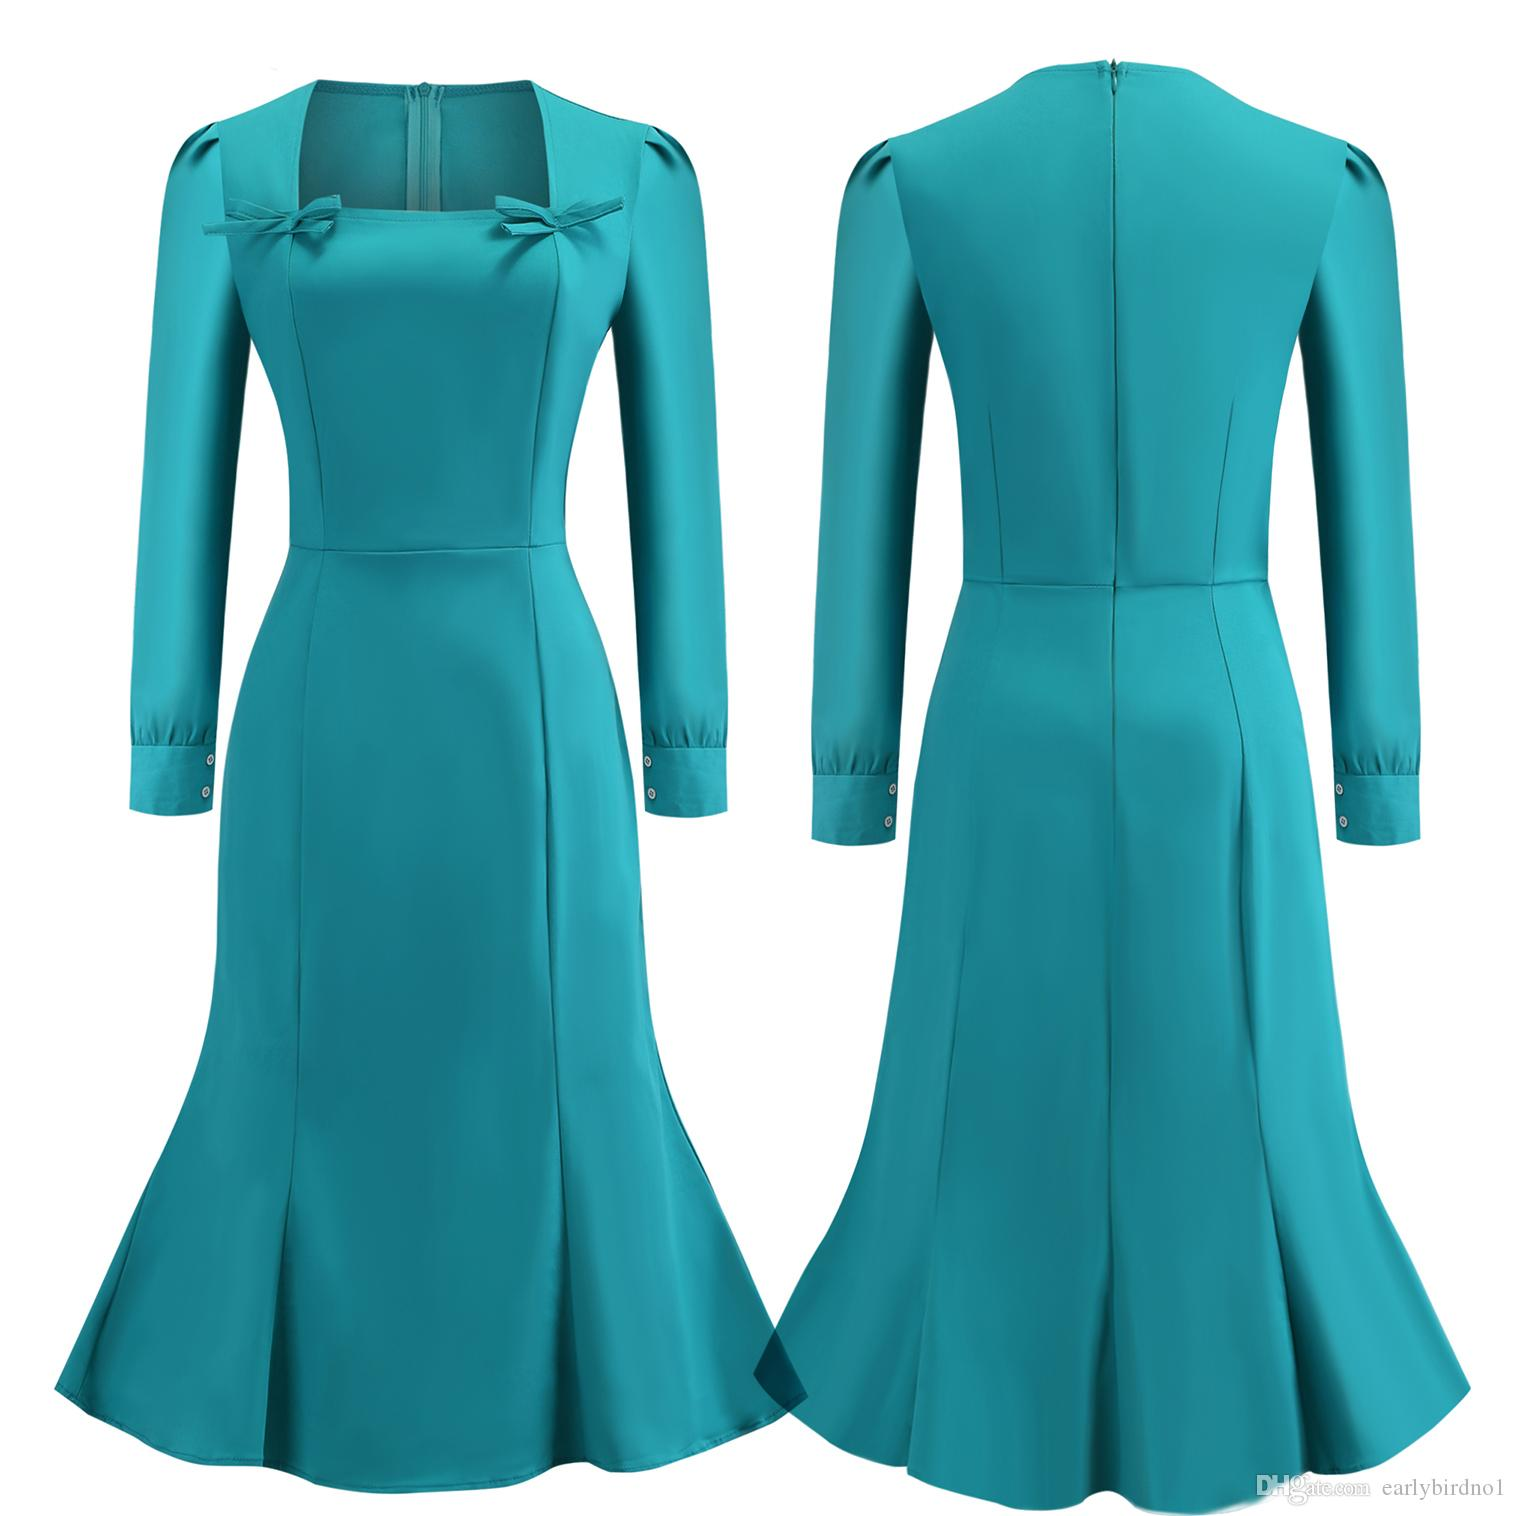 3038af8fa7 2019 2018 Teal Long Sleeves Work Dresses Square Neck Solid Color With Bow  Cotton Women Mermaid Vintage Pencil Dress FS6141 From Earlybirdno1, ...